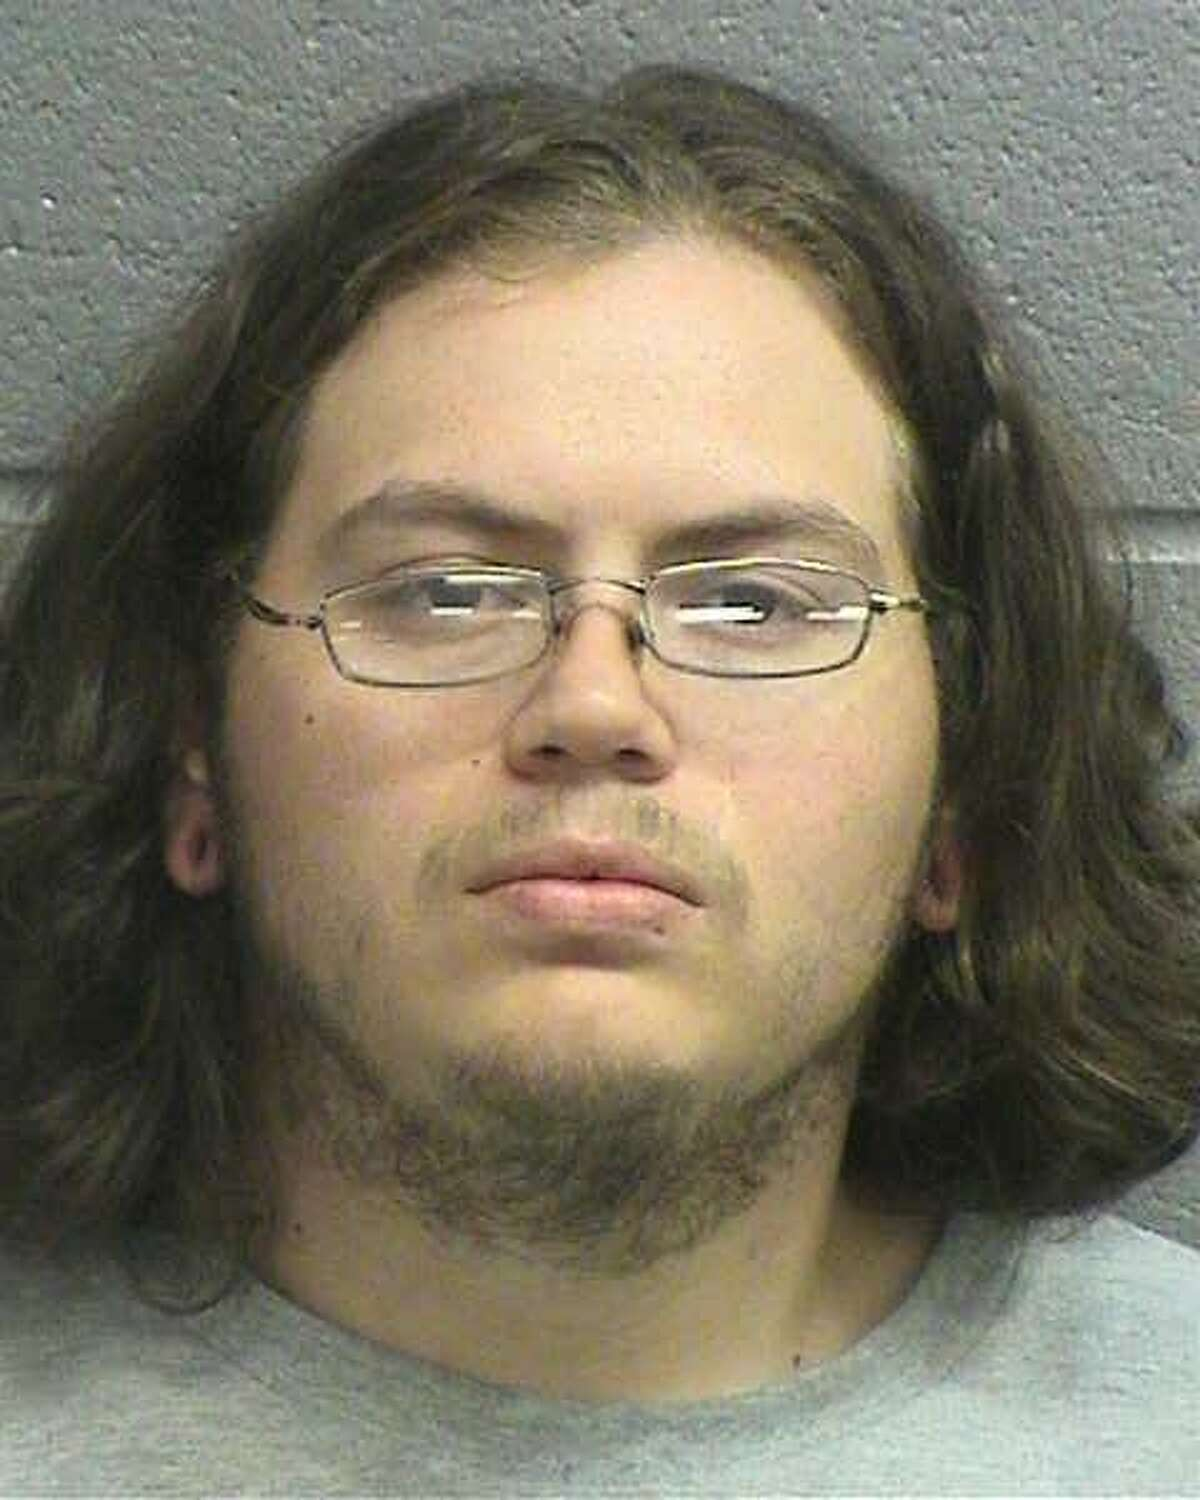 """Christopher W. Gollihar, 27, of Midland, was charged June 18 with a first-degree felony charge of burglary of a habitation with the intention to commit other felonies.Gollihar illegally entered a woman's Midland College dorm and assaulted a naked man in the dorm. The men fought briefly before Gollihar said """"truce"""" and left the dorm, according to the arrest affidavit.If convicted, he could face between five and 99 years in prison."""